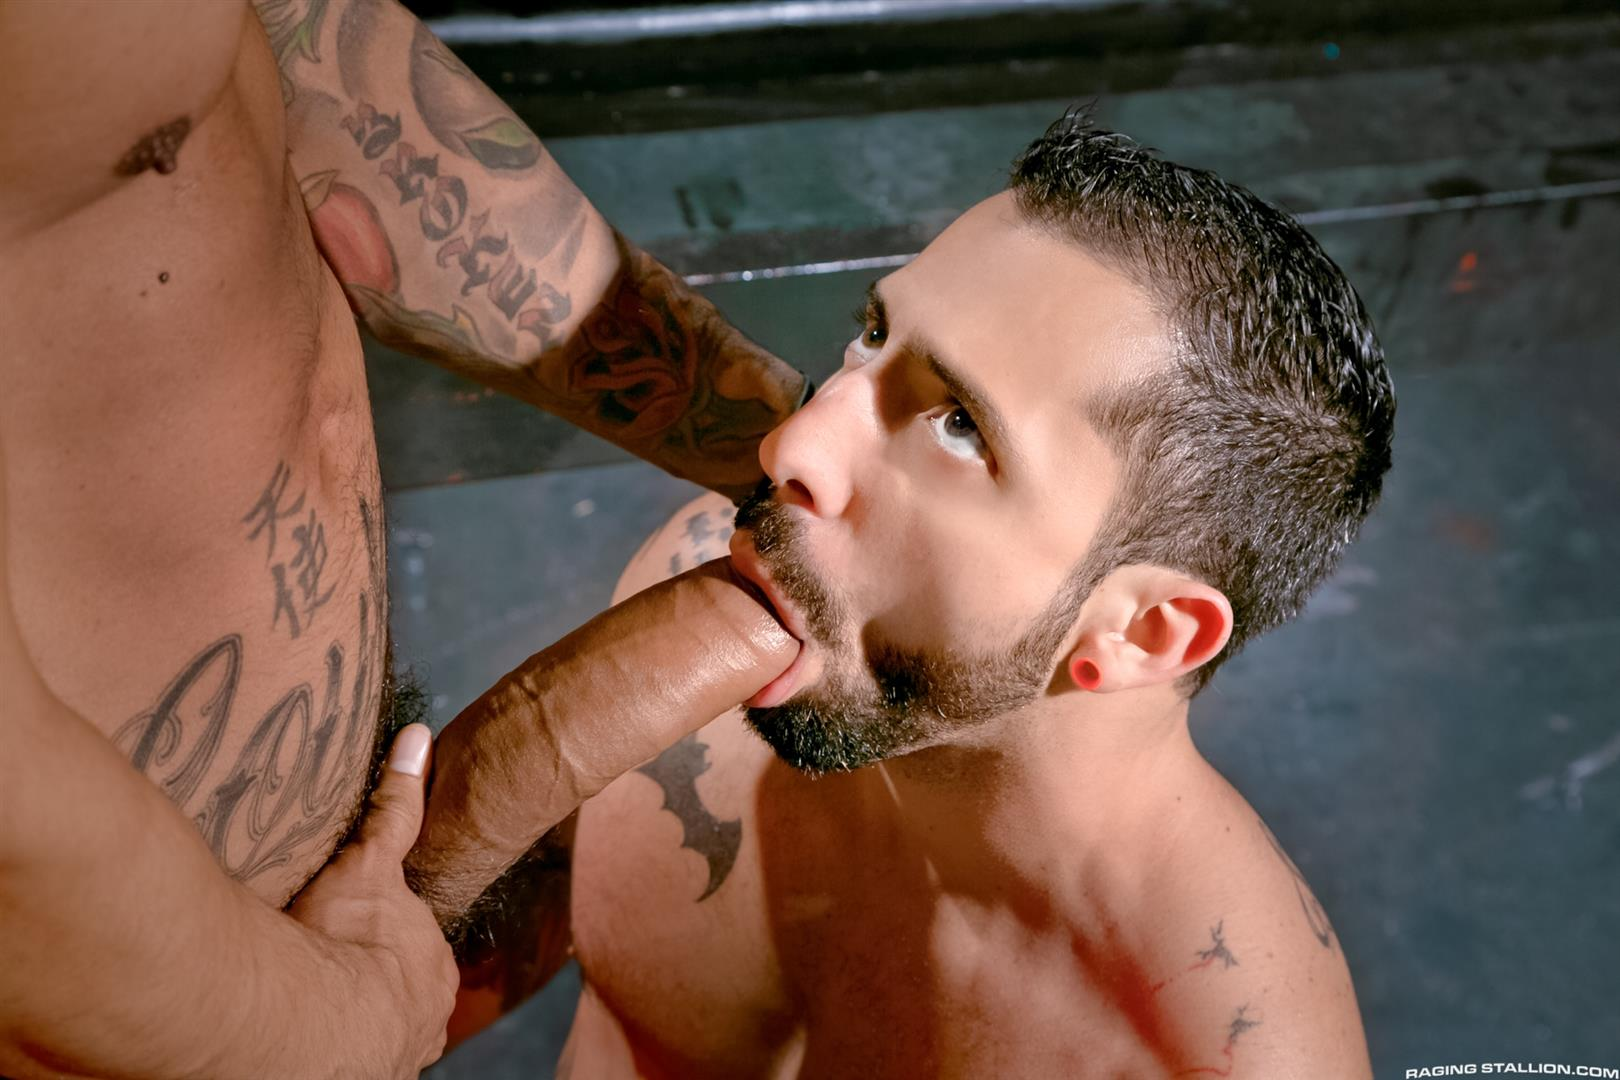 Raging Stallion Boomer Banks and Nick Cross Huge Uncut Cock Fucking A Latino Ass Amateur Gay Porn 05 Boomer Banks Fucking Nick Cross With His Huge Uncut Cock